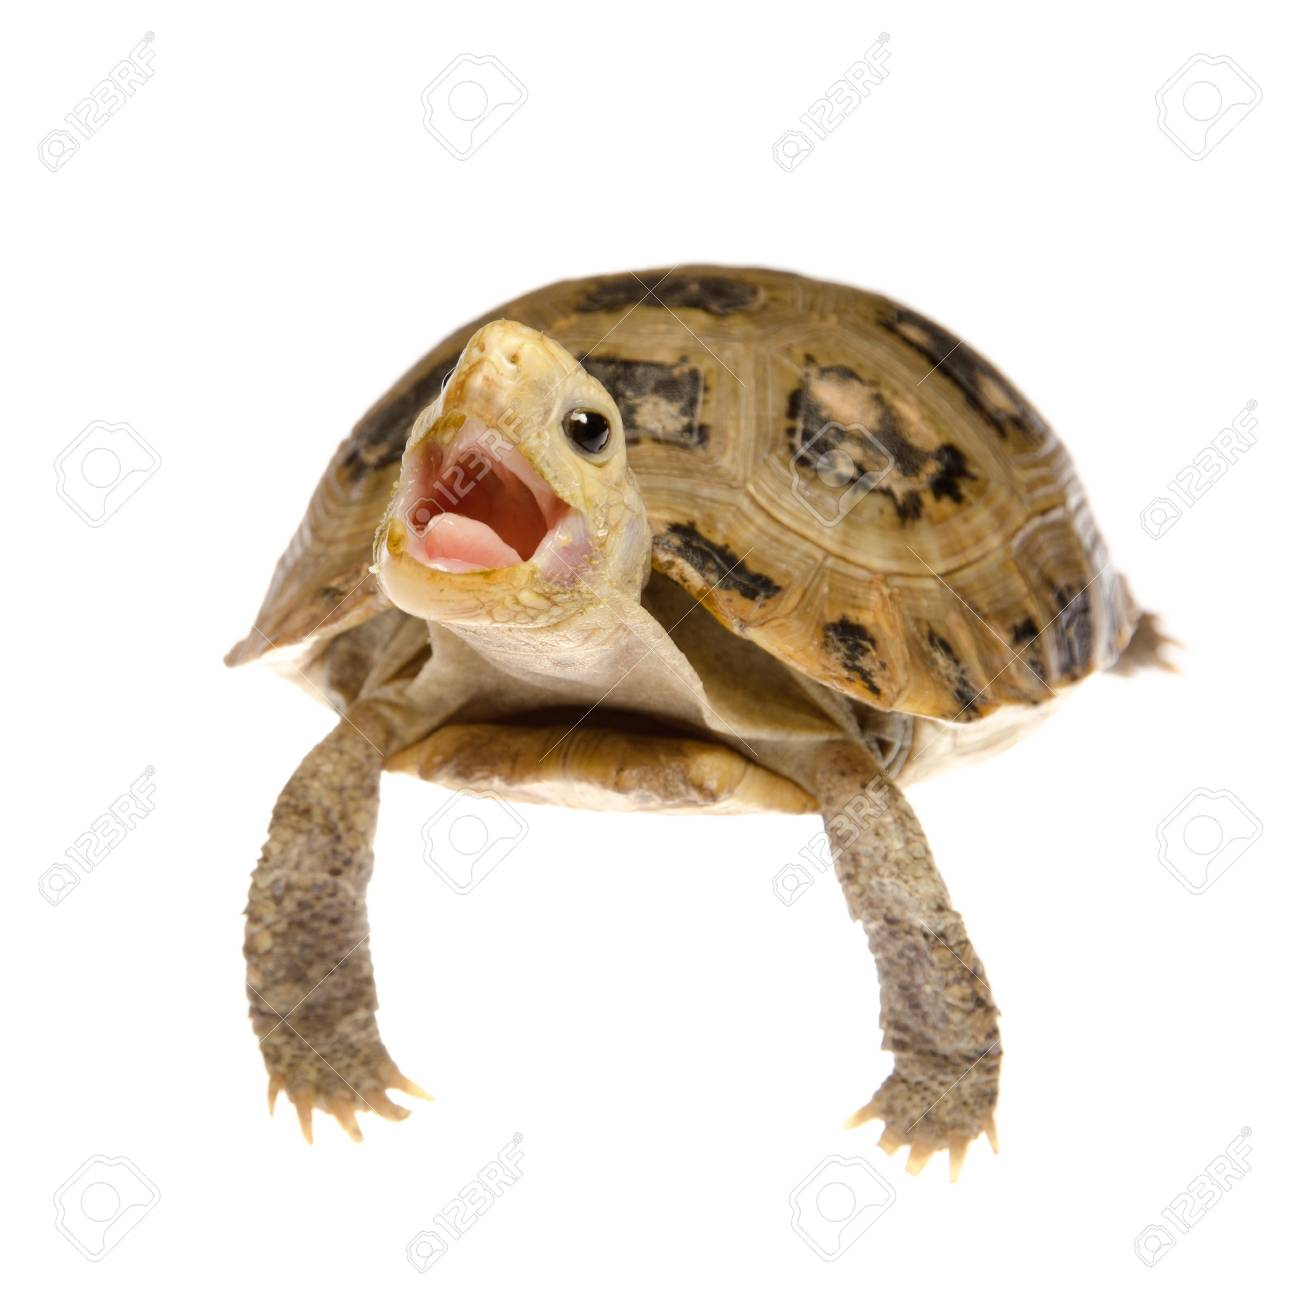 Cute Pet Turtle Tortoise Isolated Stock Photo Picture And Royalty Free Image Image 11149175